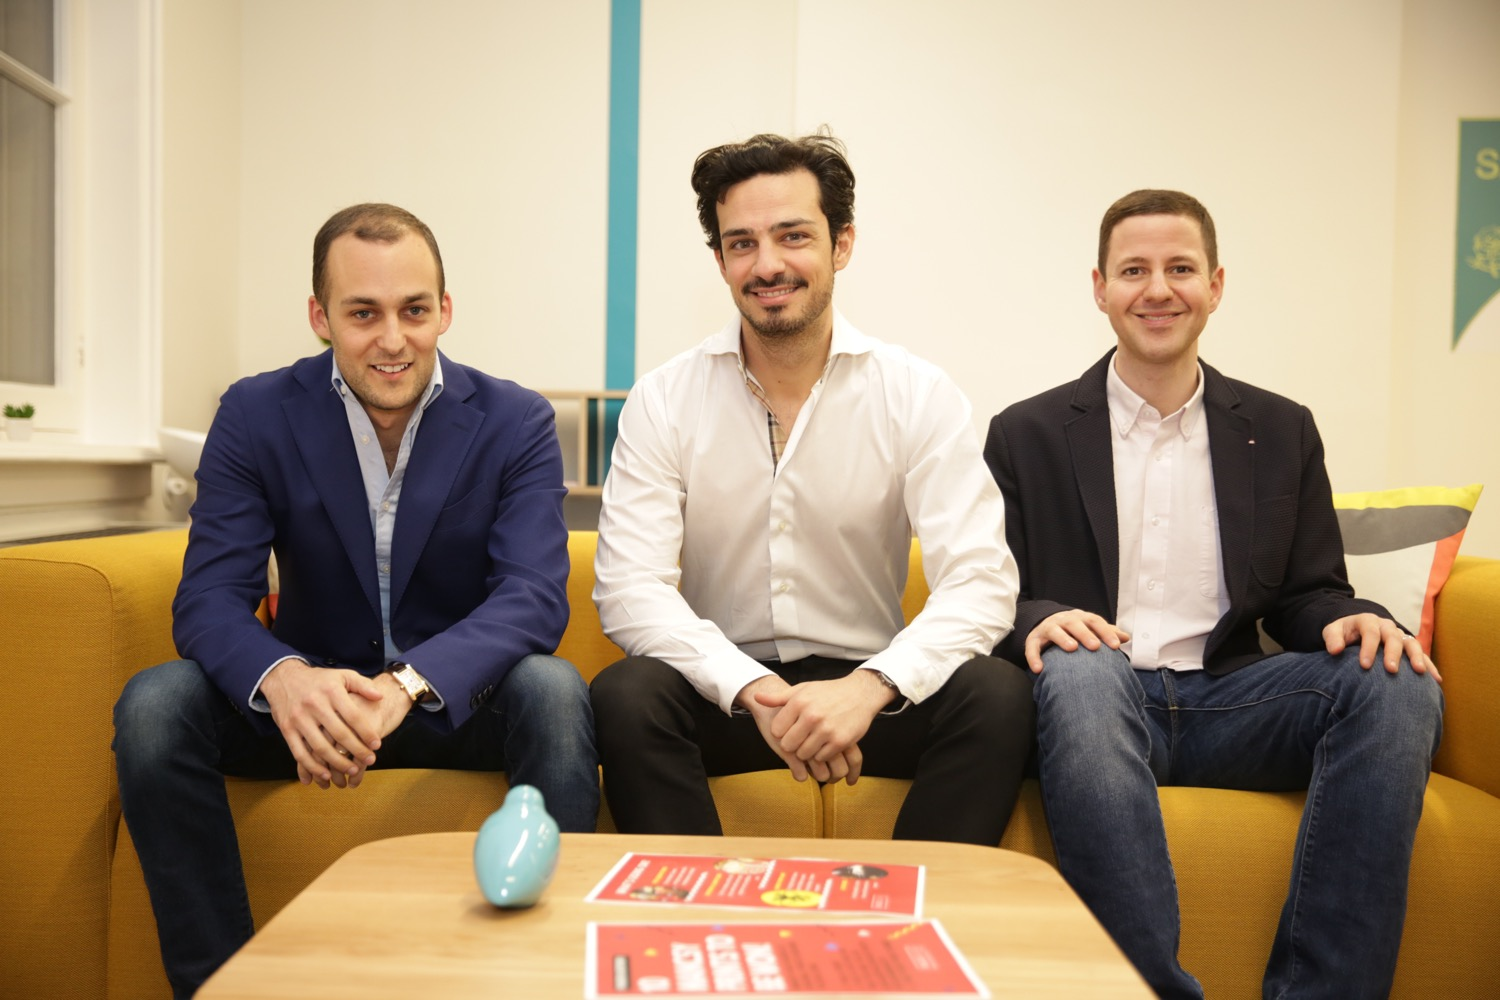 Three well-dressed men sat on a sofa for a photo